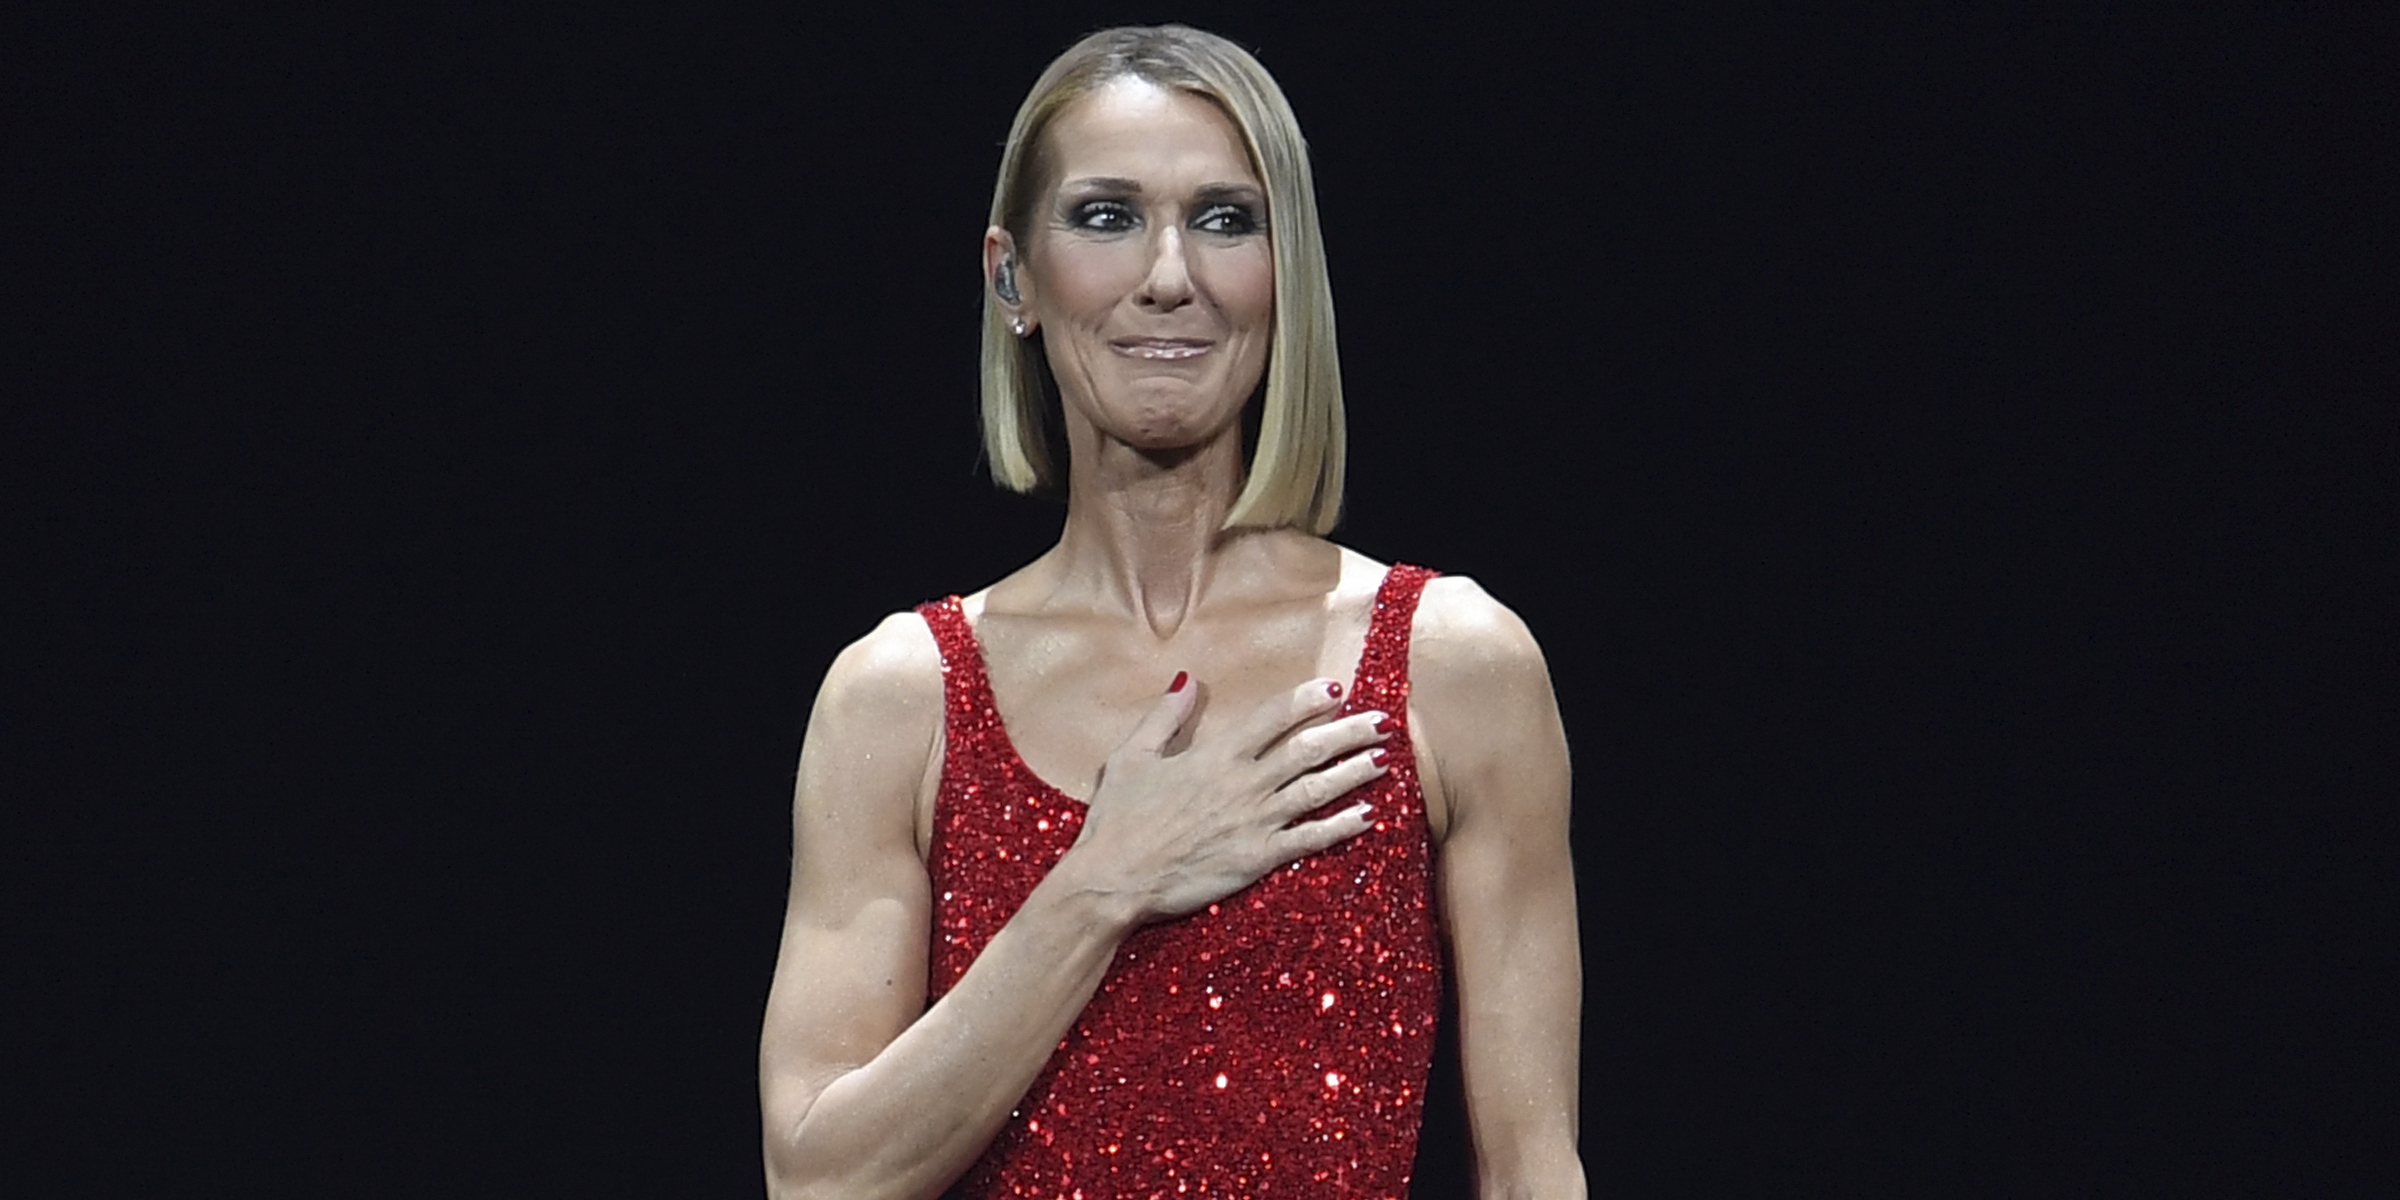 Celine Dion paid tribute to her late mother onstage just hours after death